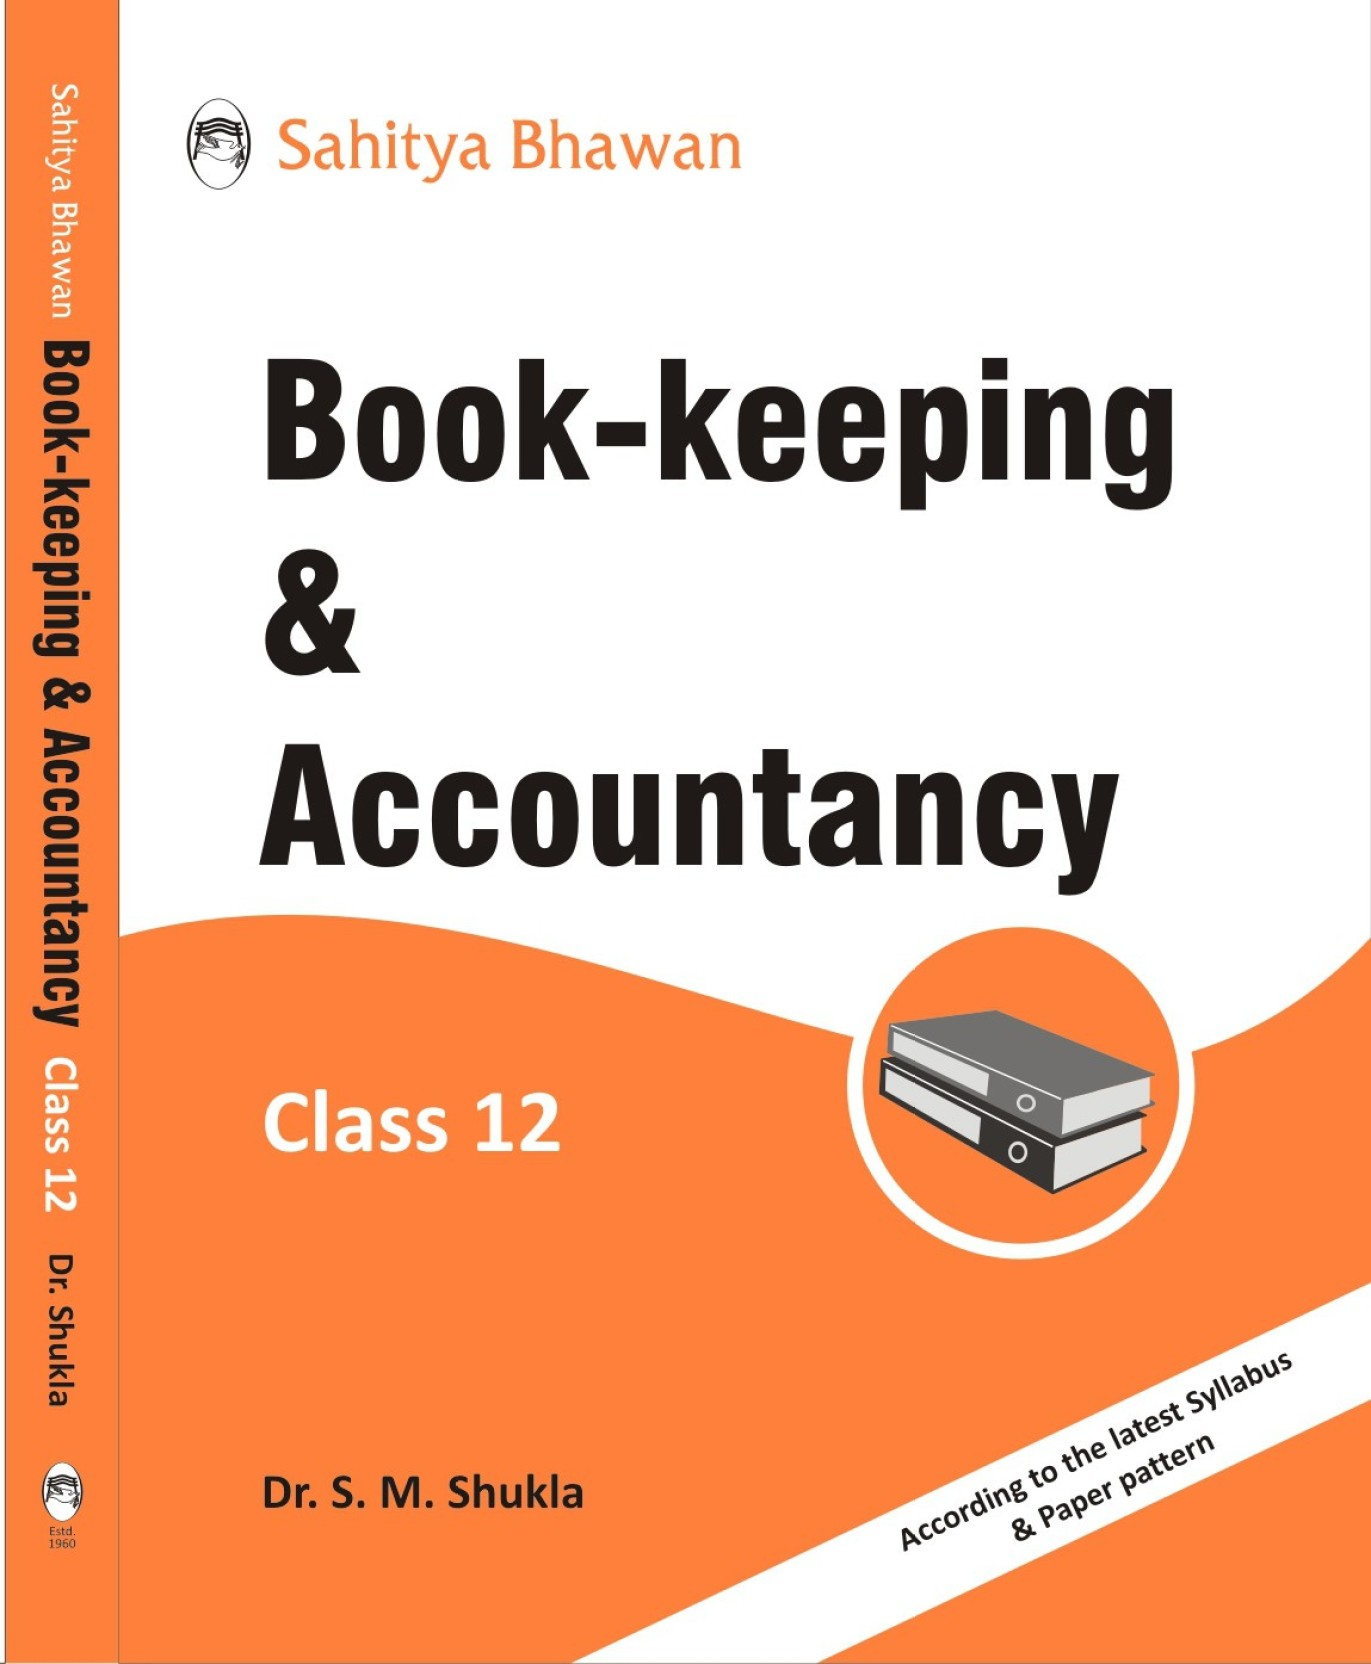 UP Board Book-Keeping & Accountancy Class 12. ADD TO CART